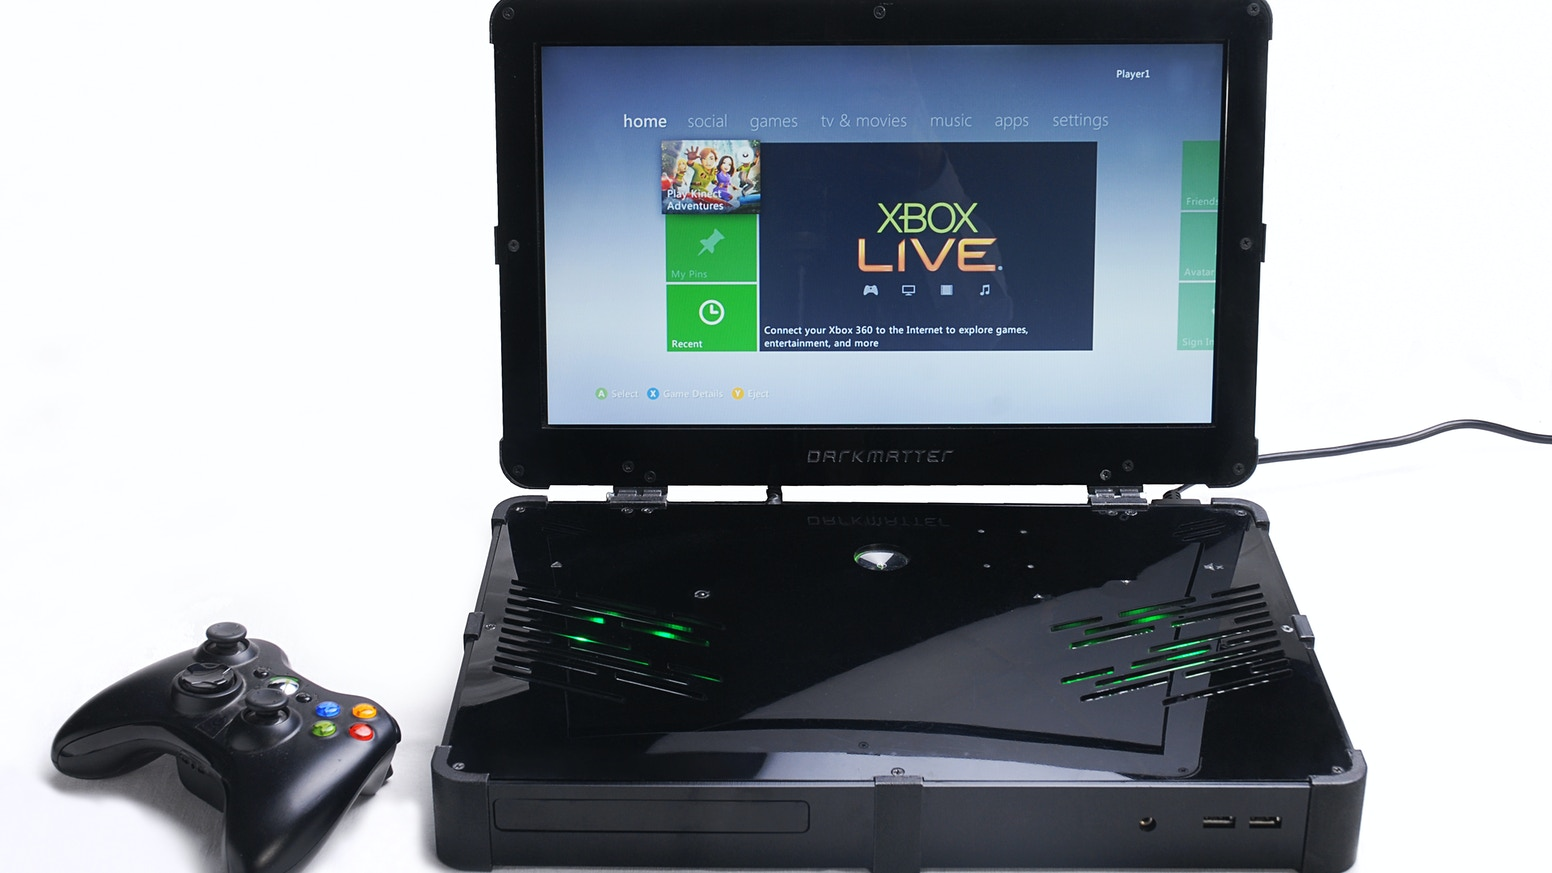 Darkmatter is the world's first Xbox laptop that you can buy as a fully assembled product or in kit form. Now Xbox ONE compatible!